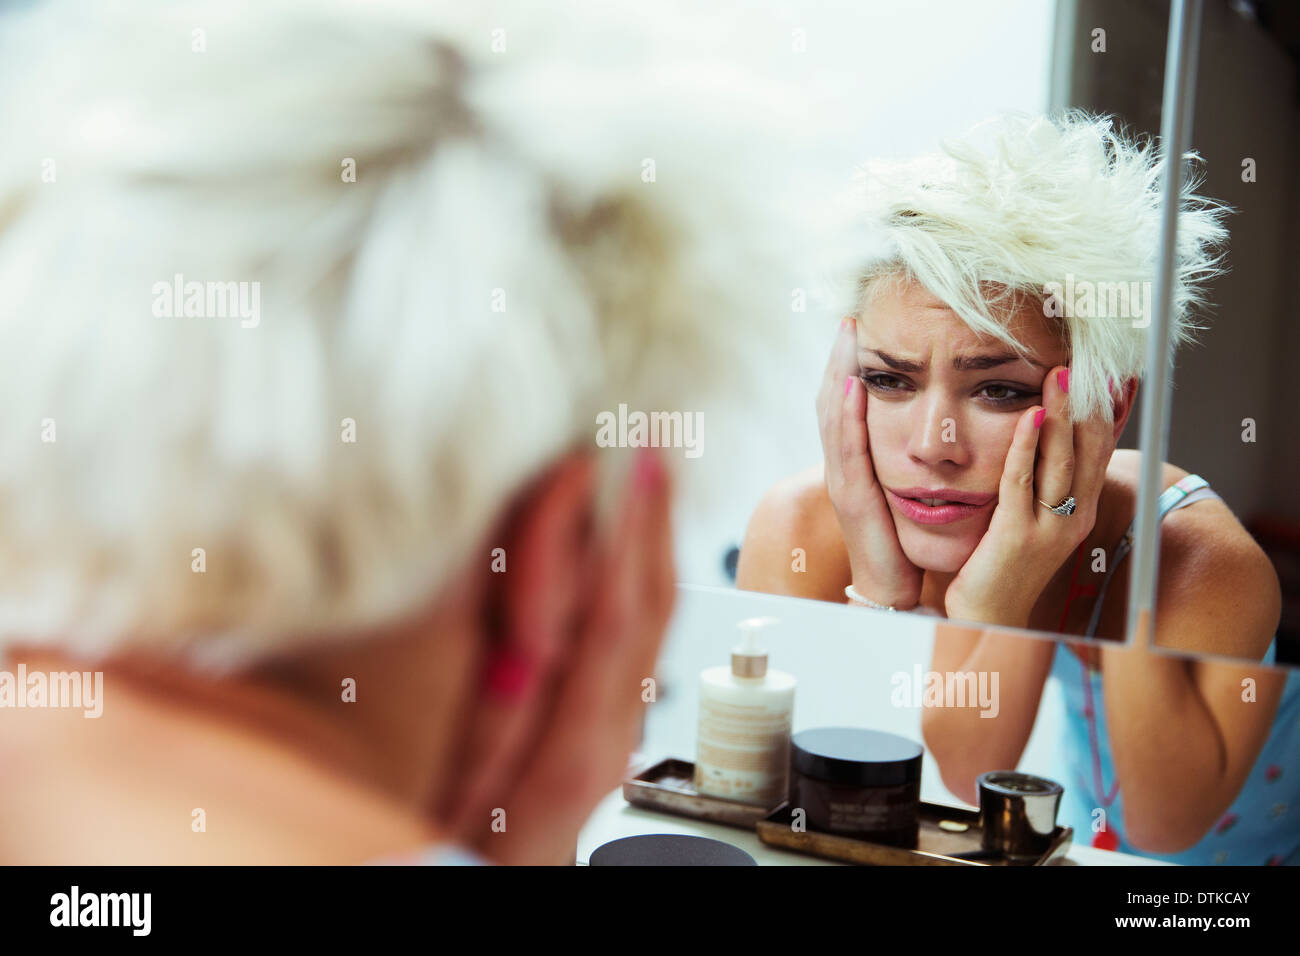 Hungover woman examining herself in mirror - Stock Image